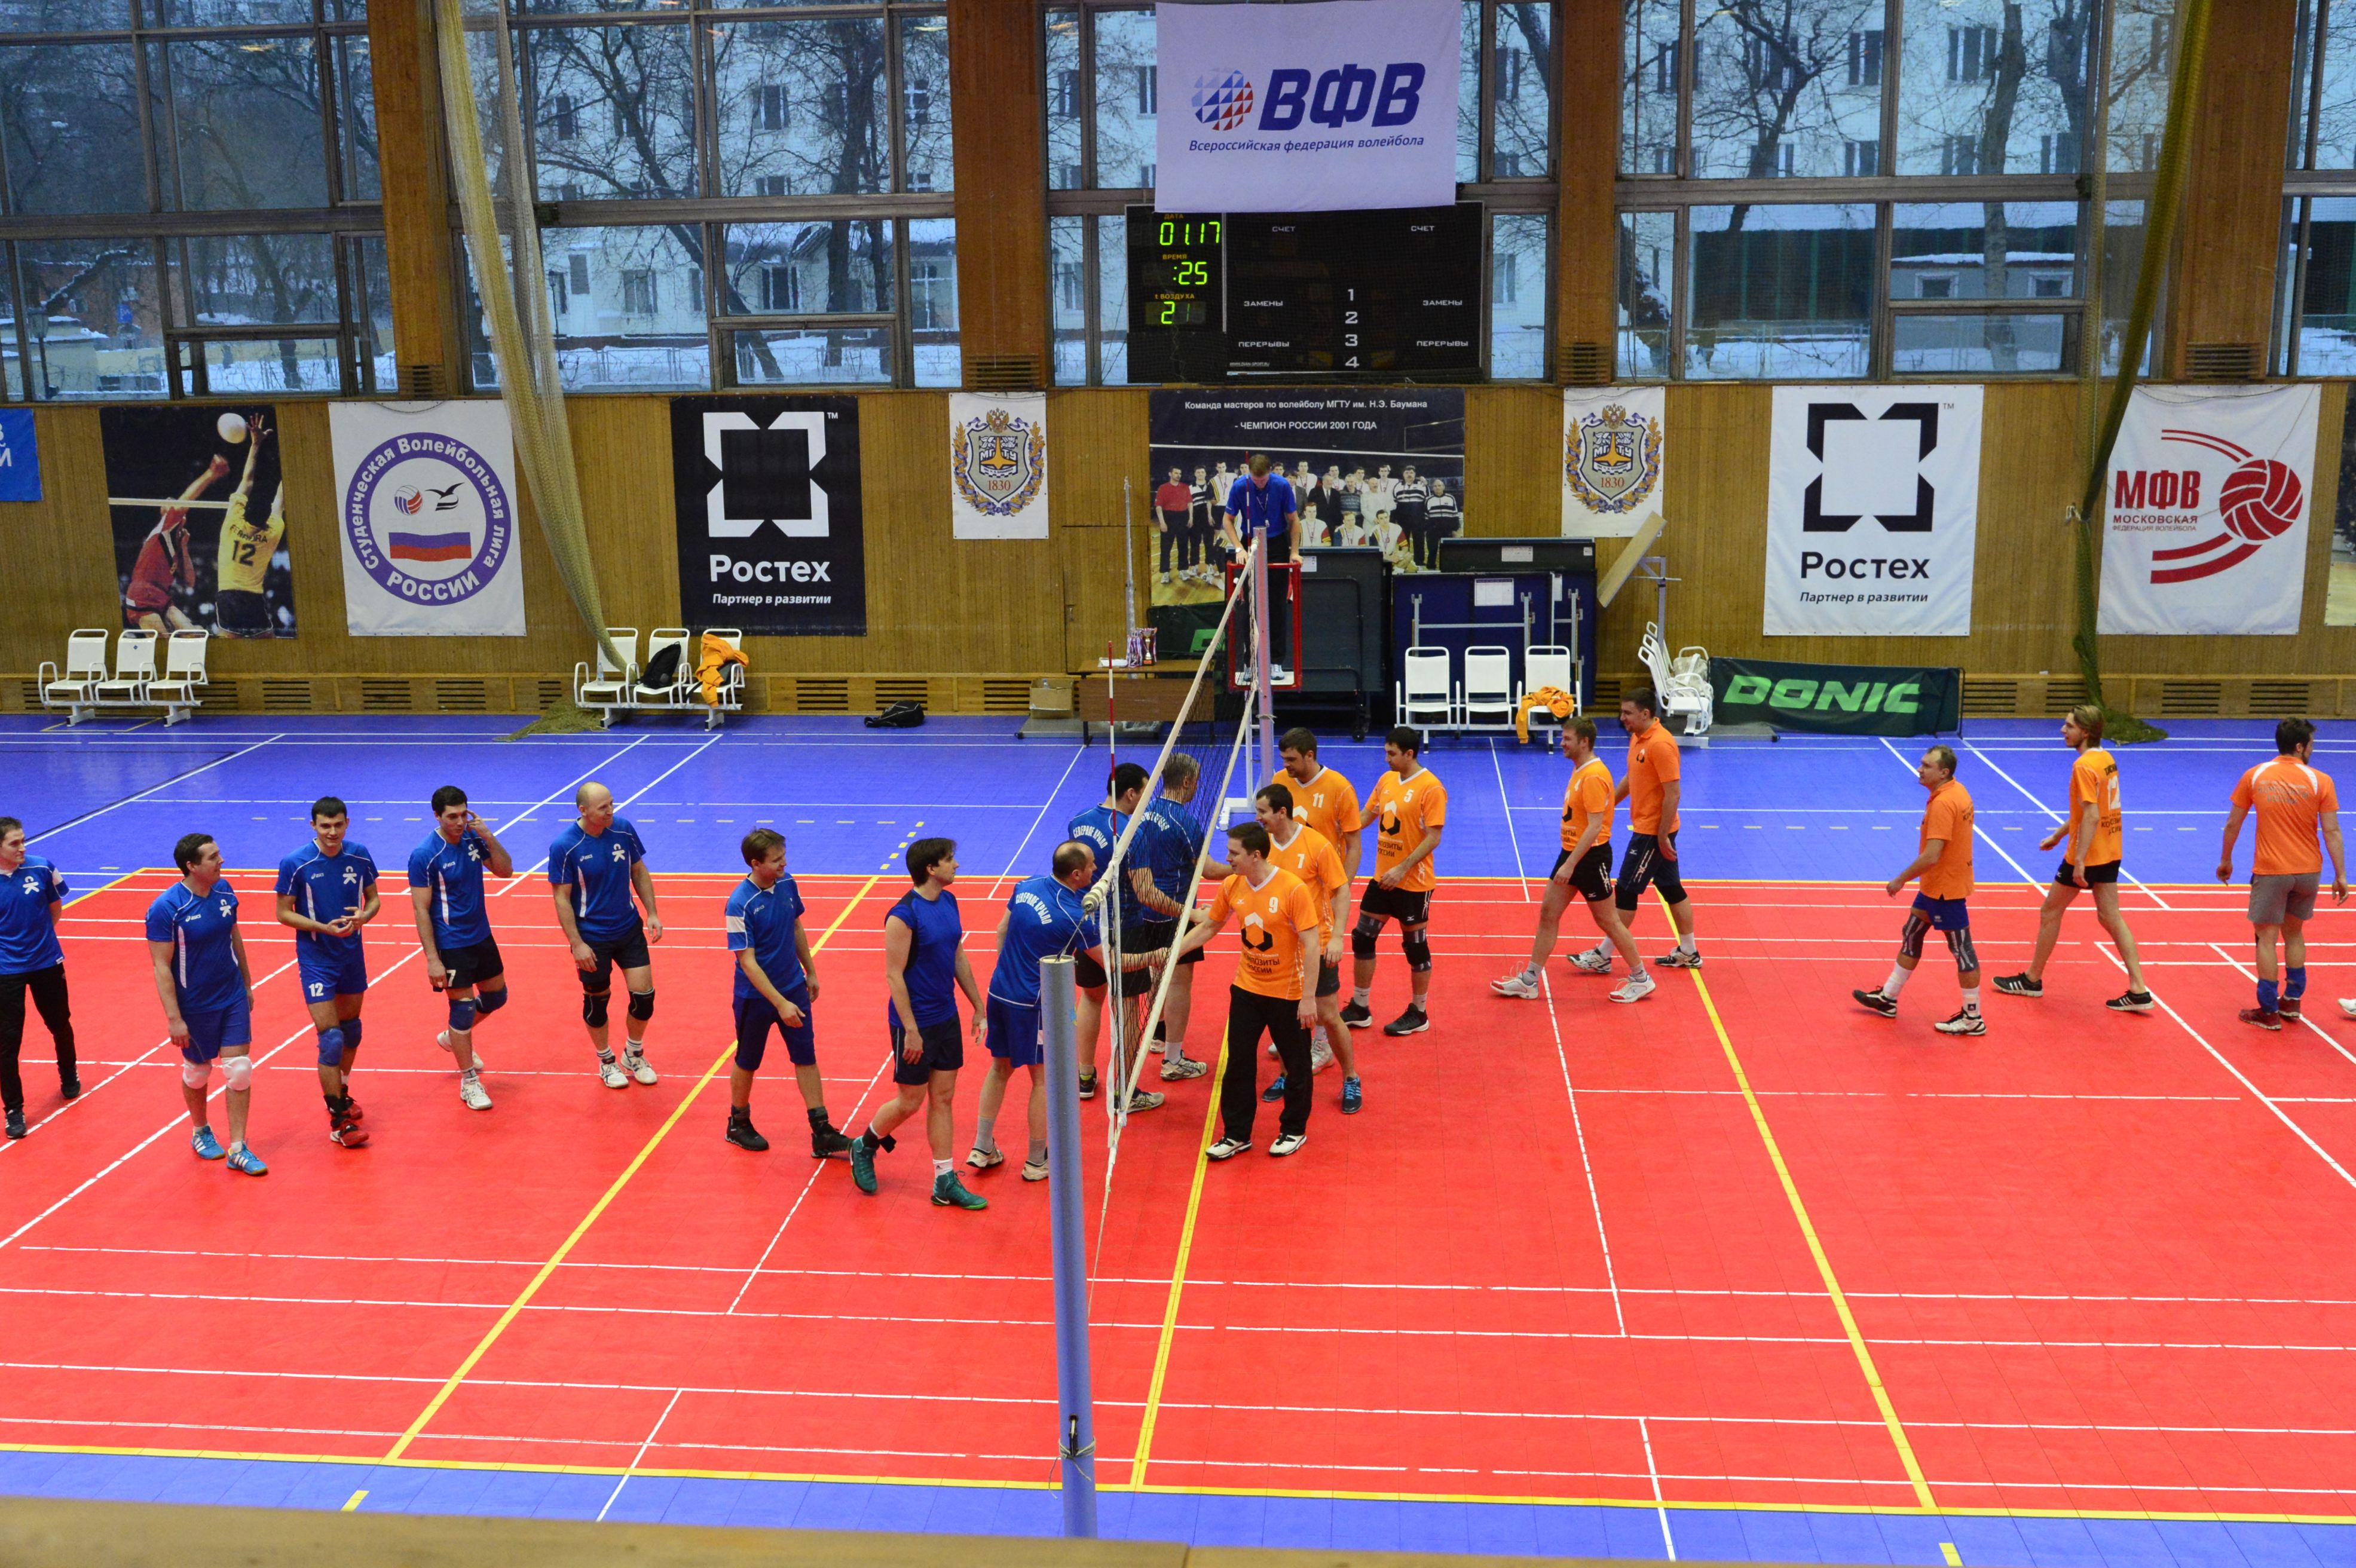 Файл:FOF1 - Volleyball 2017 - 2.JPG